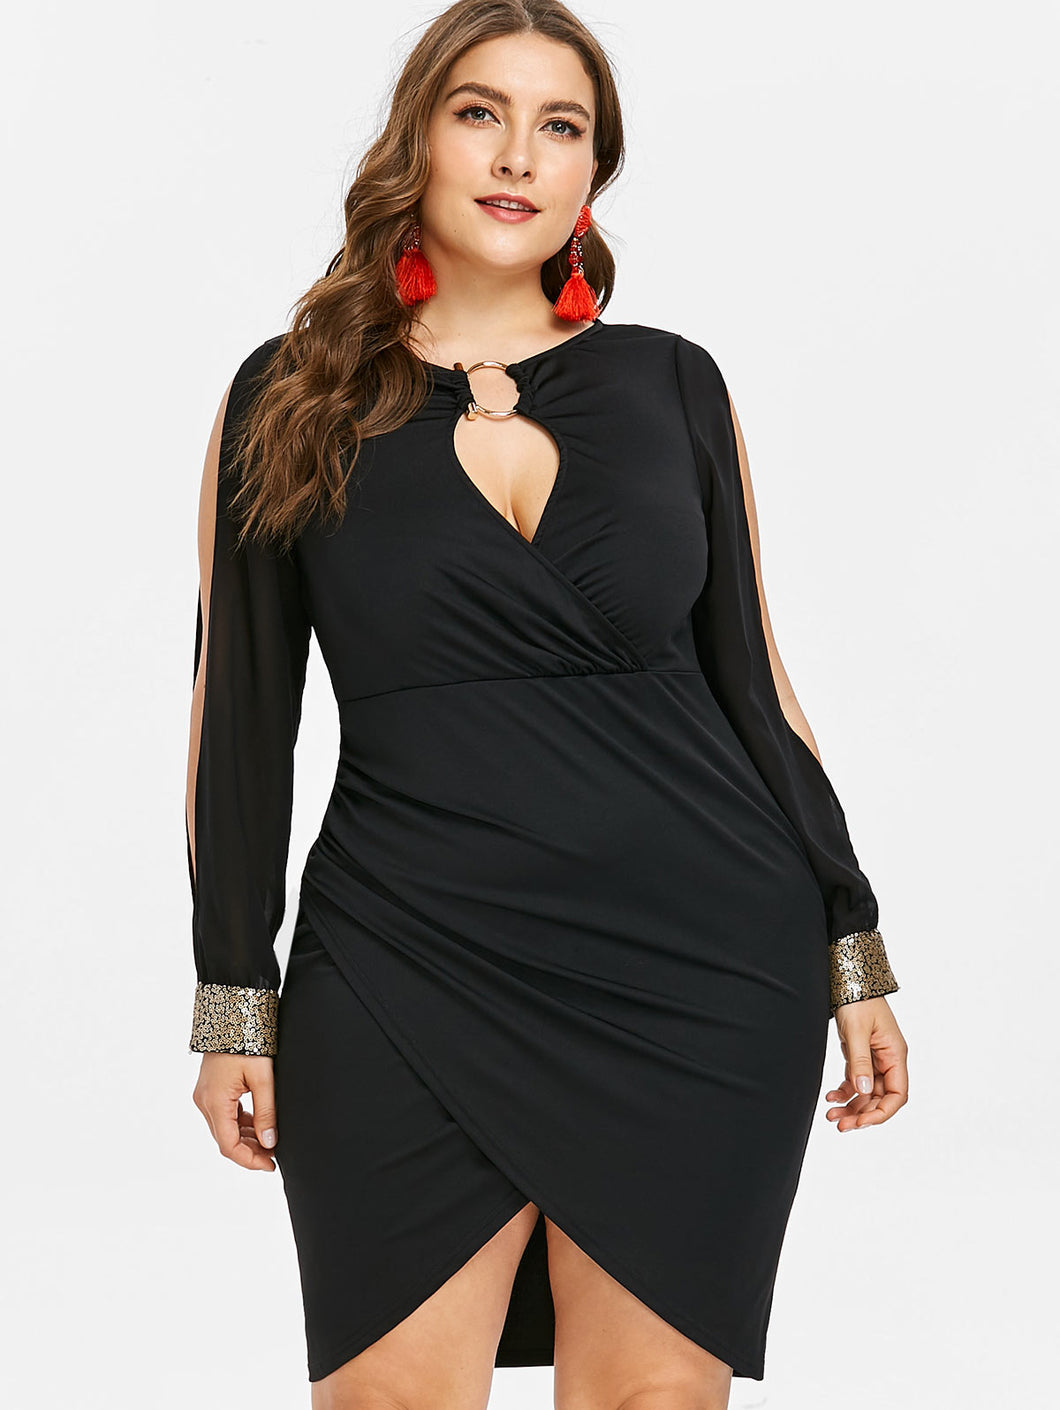 Club Dresses | Club Outfits | Party Dresses plus size, Women's Plus Size Club Party Wear Sequined Slim Dress, Fashion Long Sleeve Keyhole Neck Ring Slit Bodycon - Clubbing Love